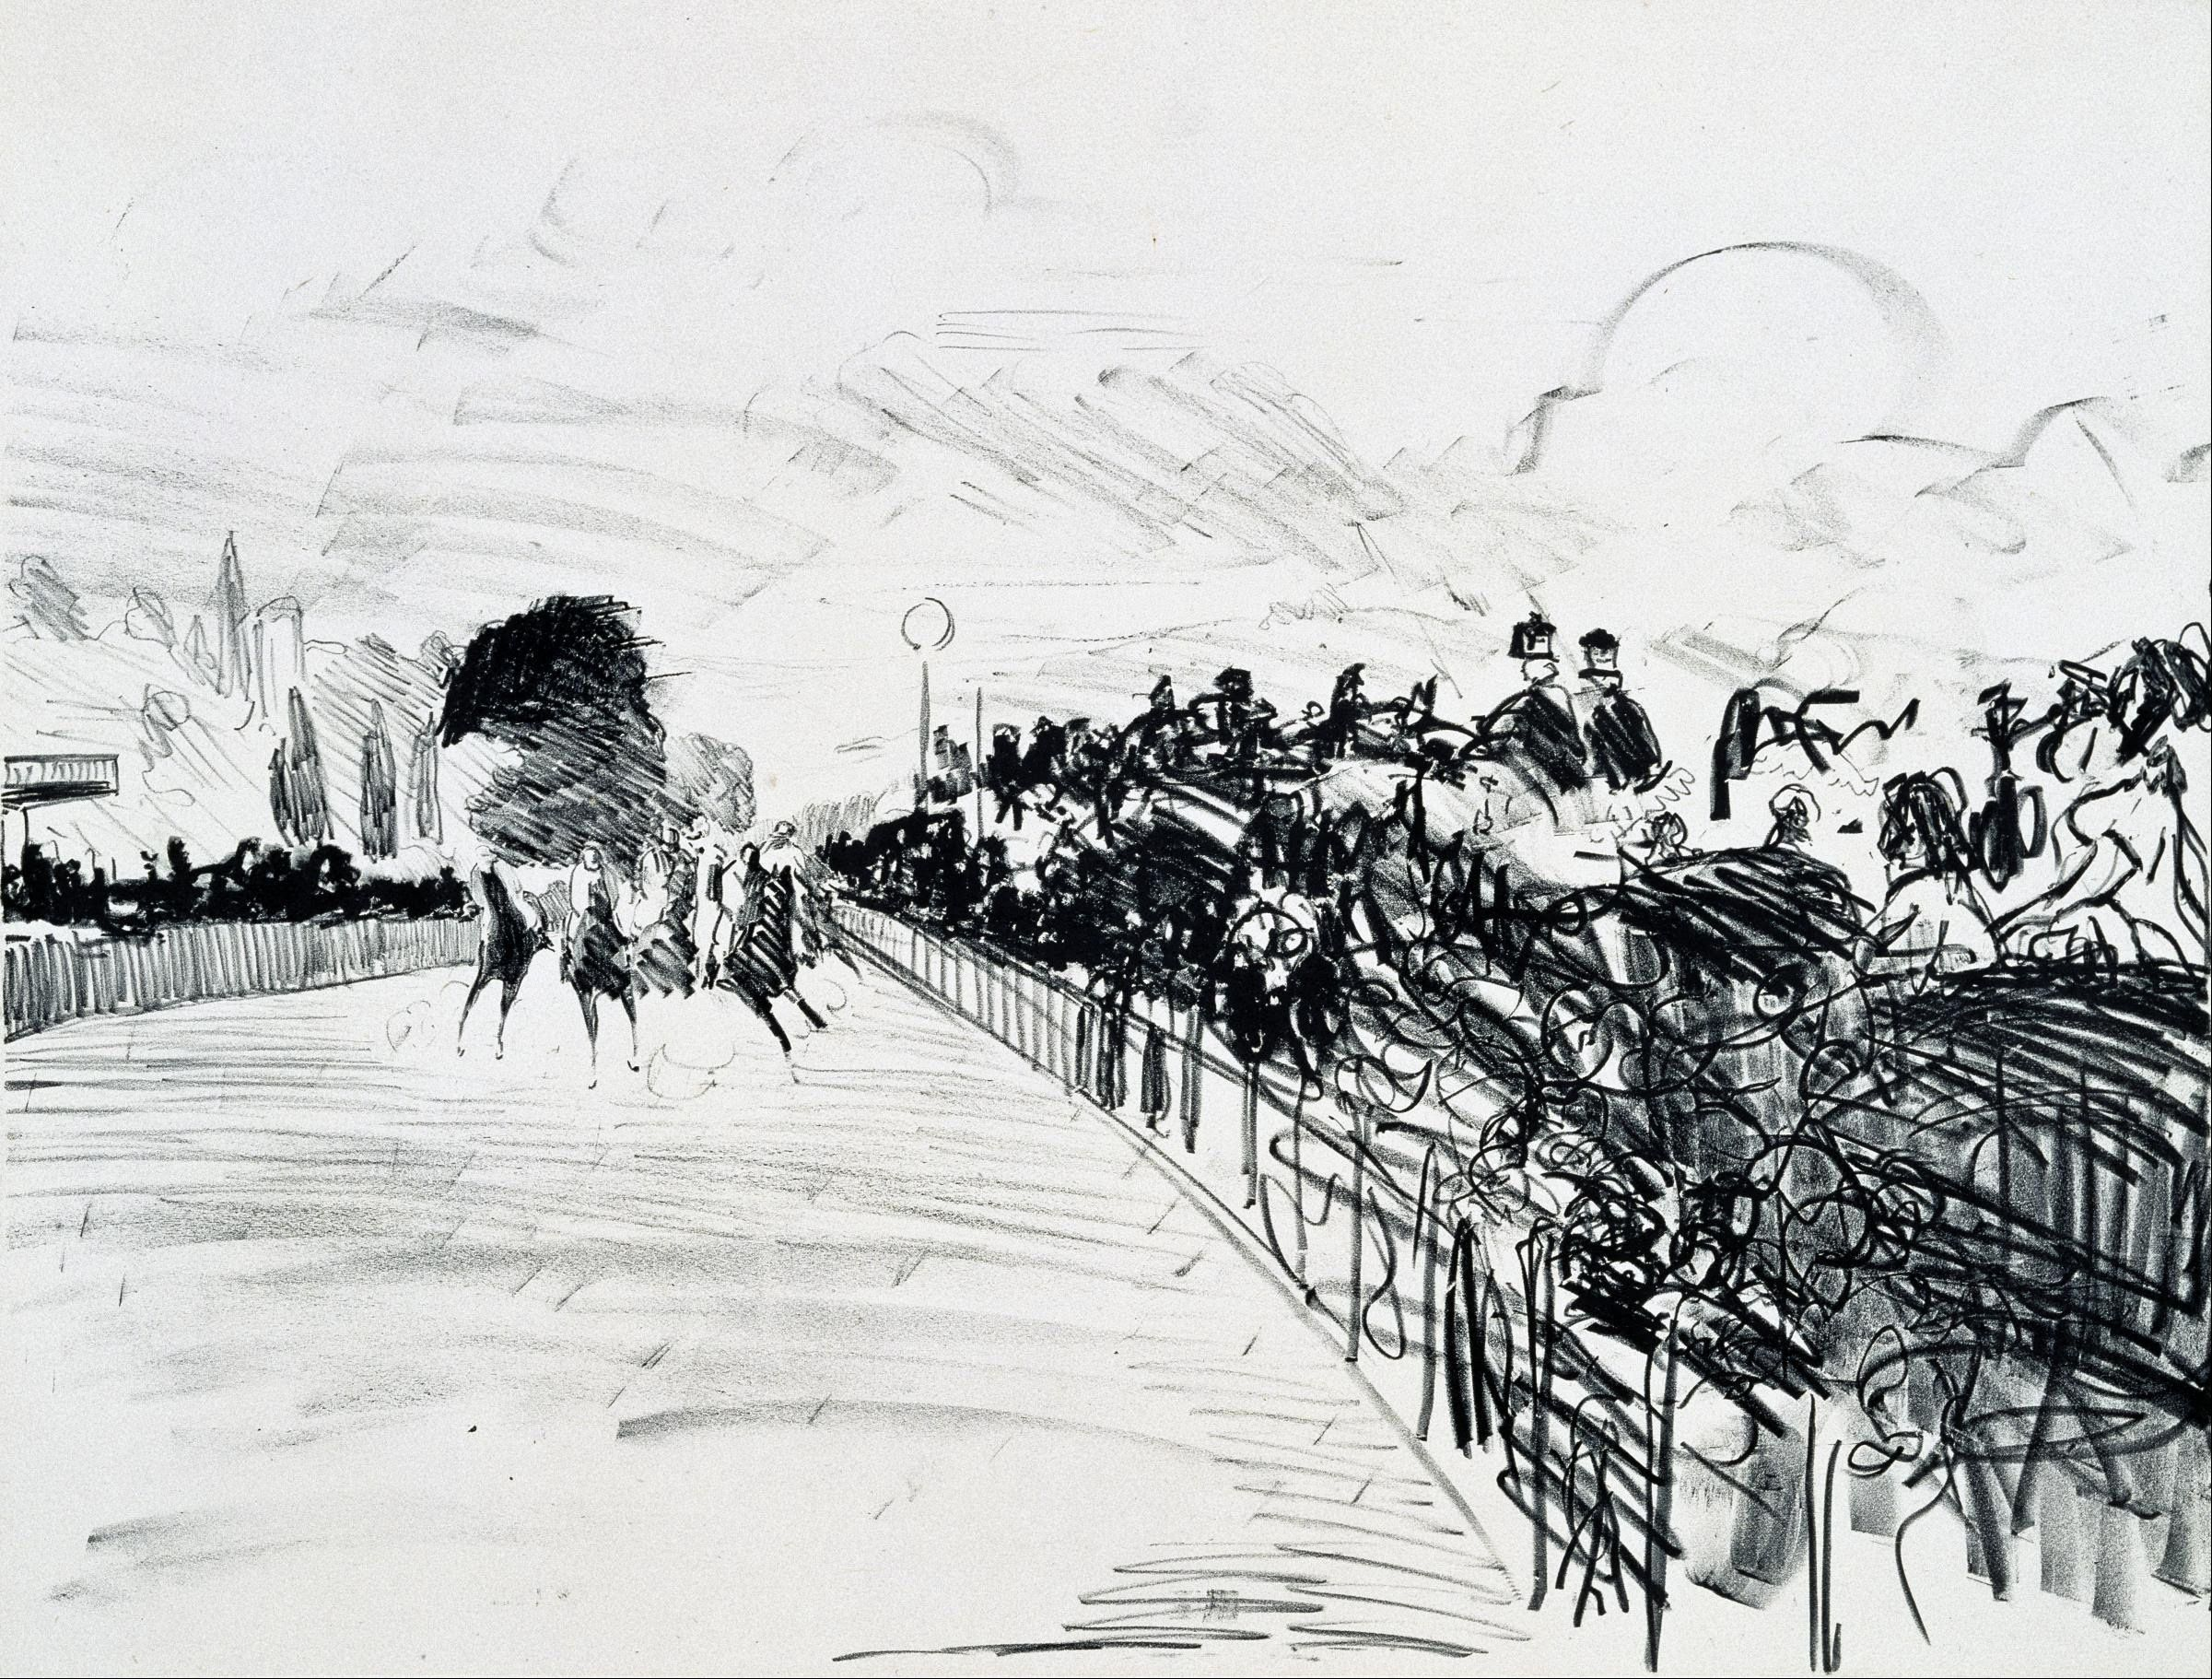 edouard manet the races at longchamp sketch - 1865 drawing movement developed around this time